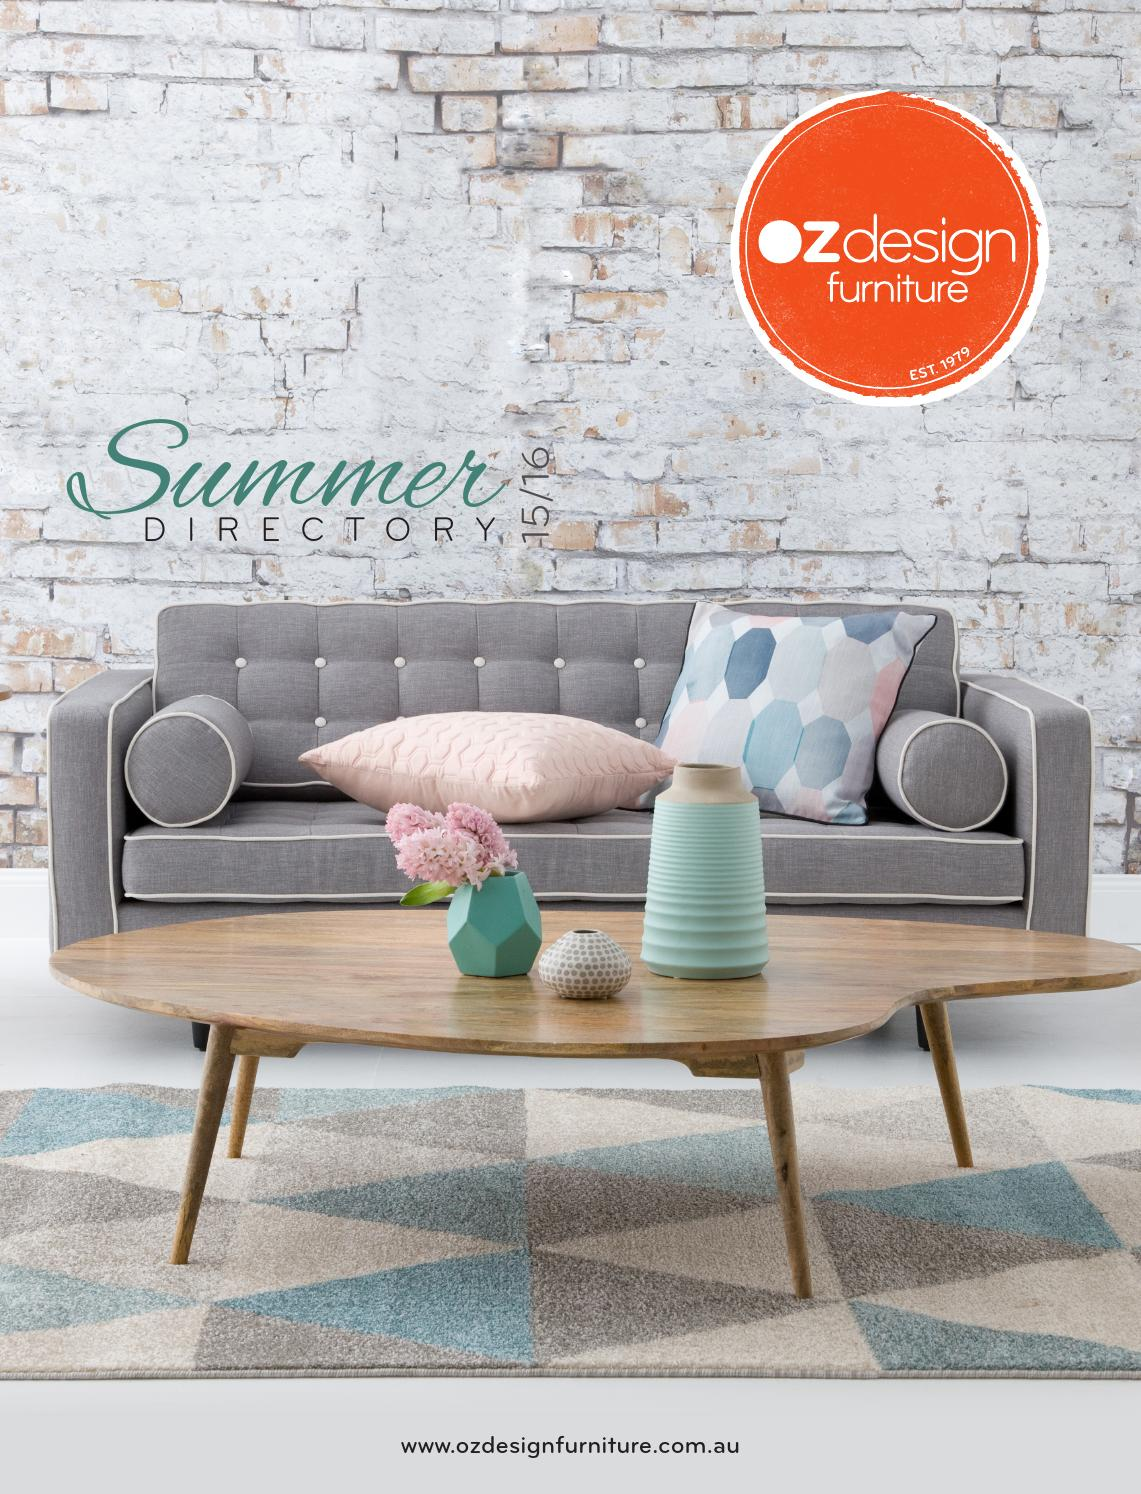 OZ Design Furniture Summer 15/16 Directory By Oz Design Furniture   Issuu